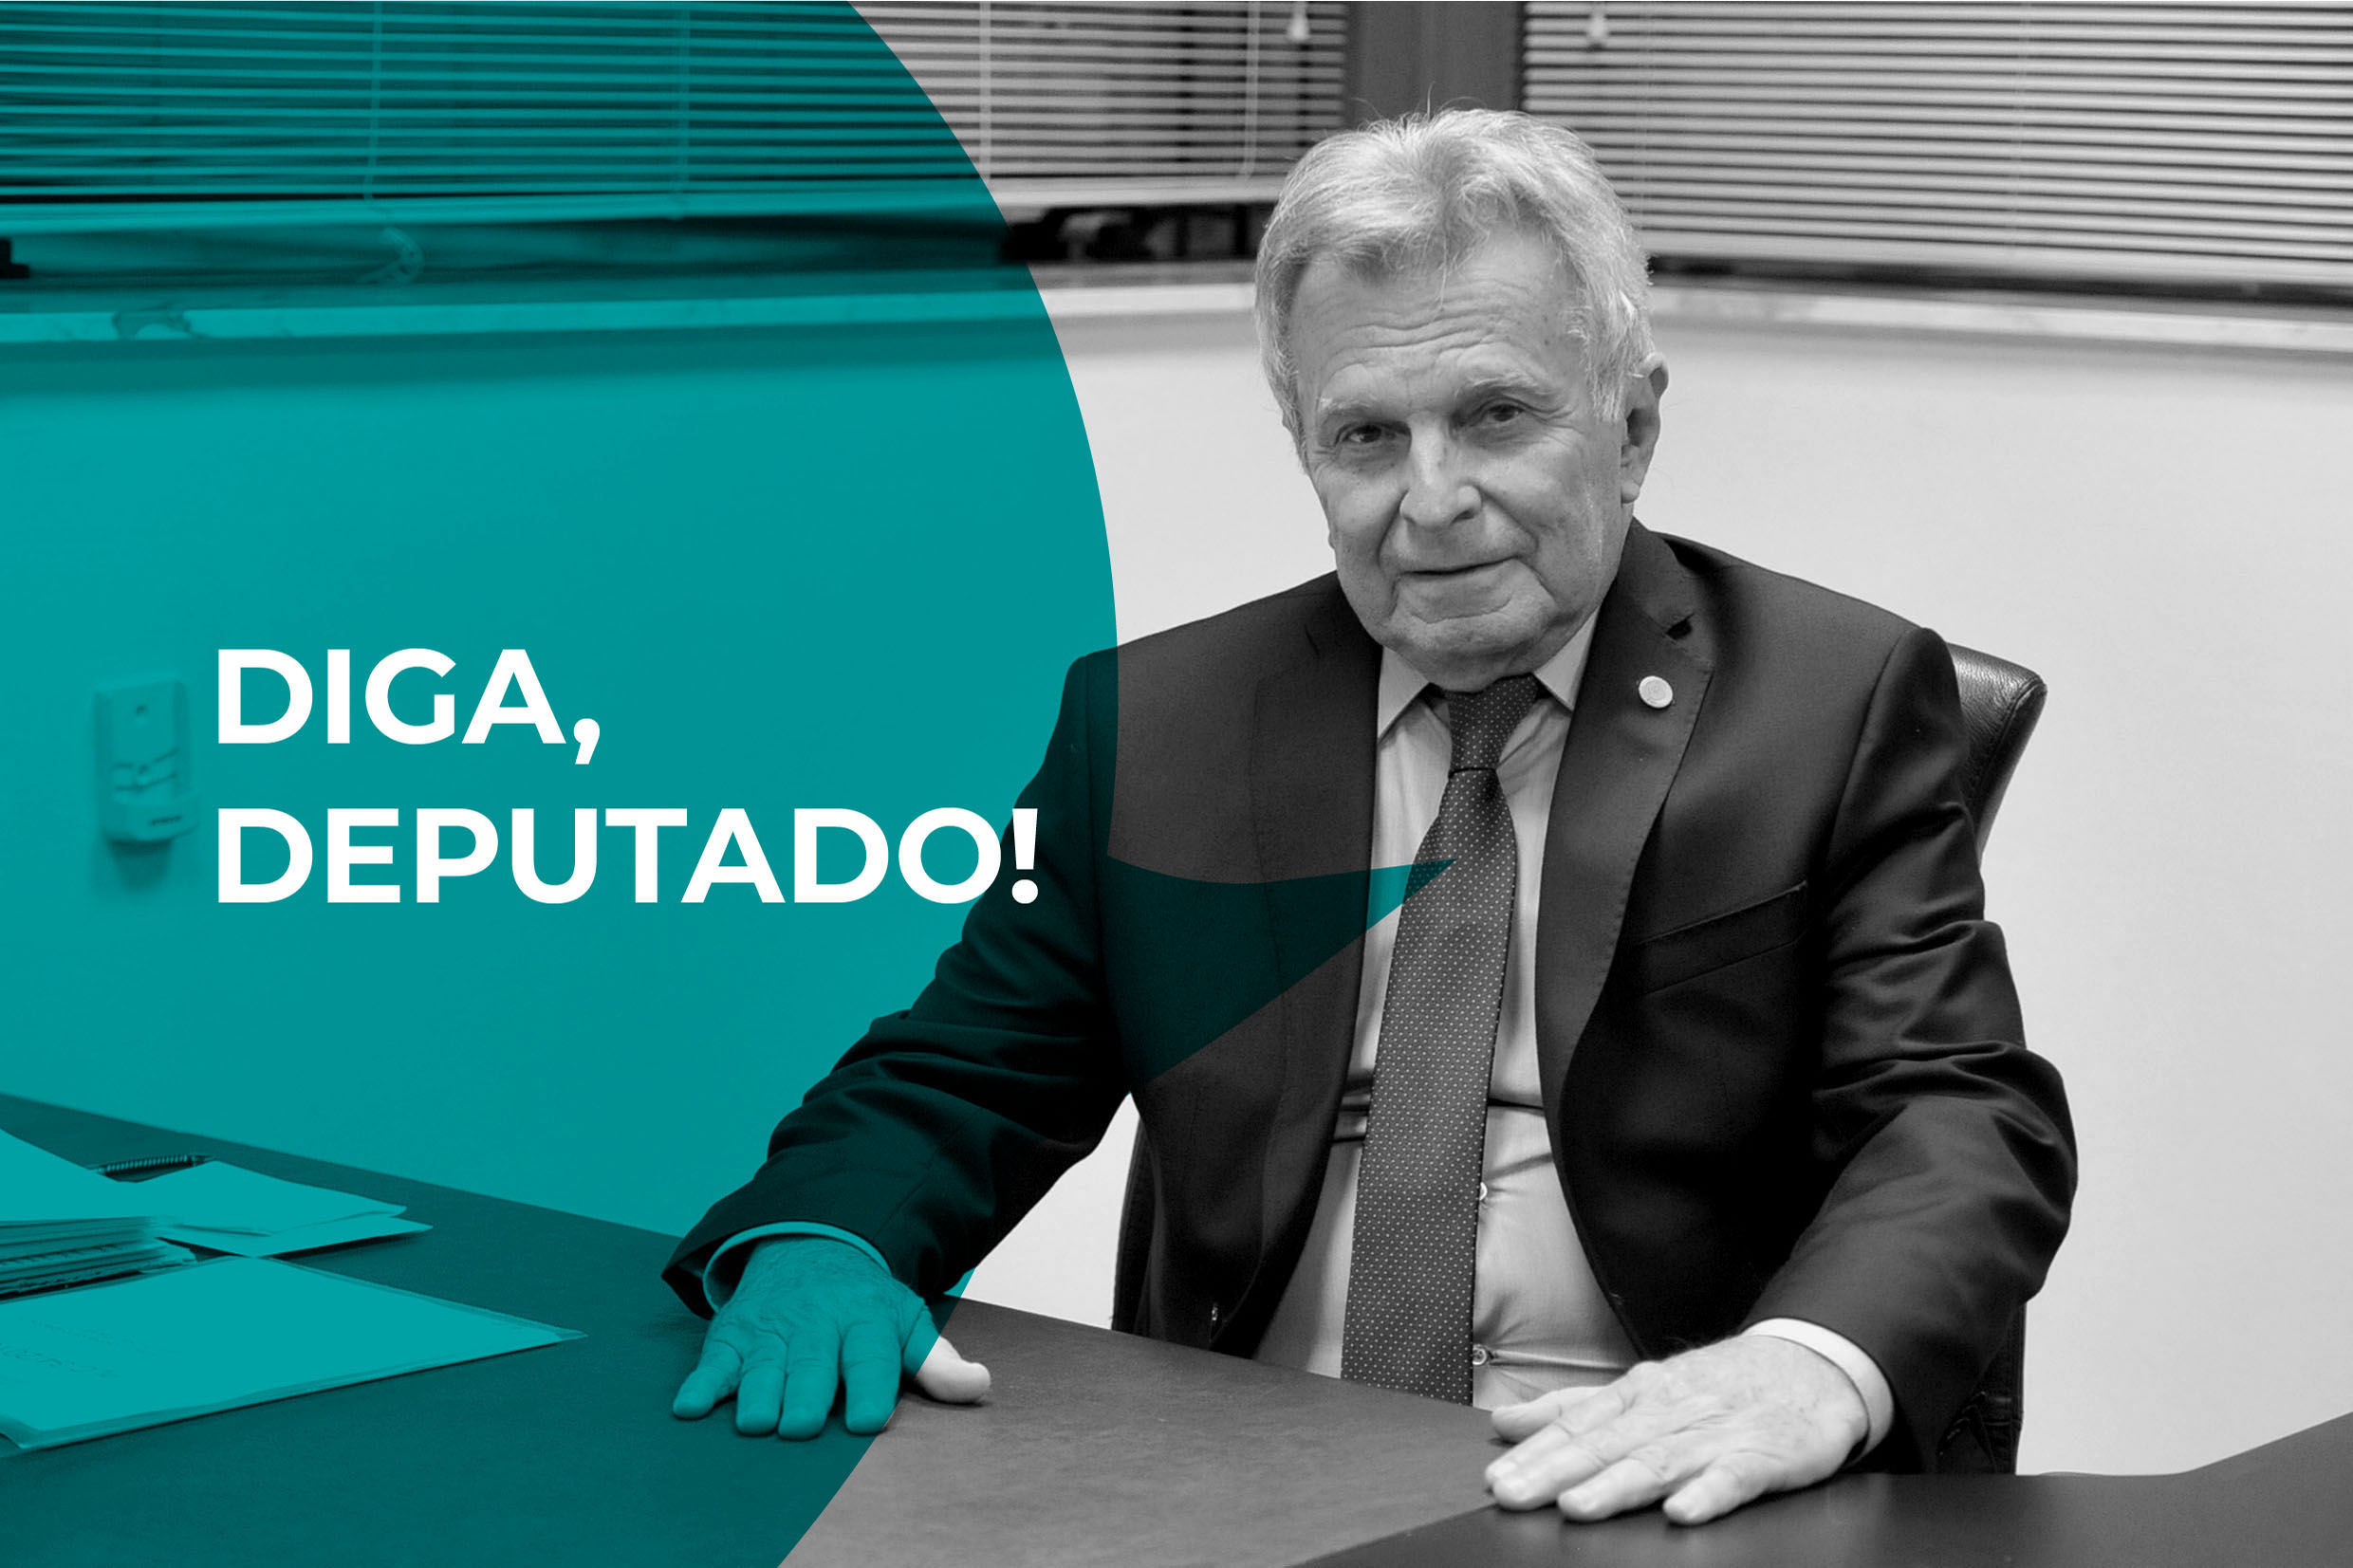 Ataide Teruel<a style='float:right' href='https://www3.al.sp.gov.br/repositorio/noticia/N-08-2019/fg236786.jpg' target=_blank><img src='/_img/material-file-download-white.png' width='14px' alt='Clique para baixar a imagem'></a>